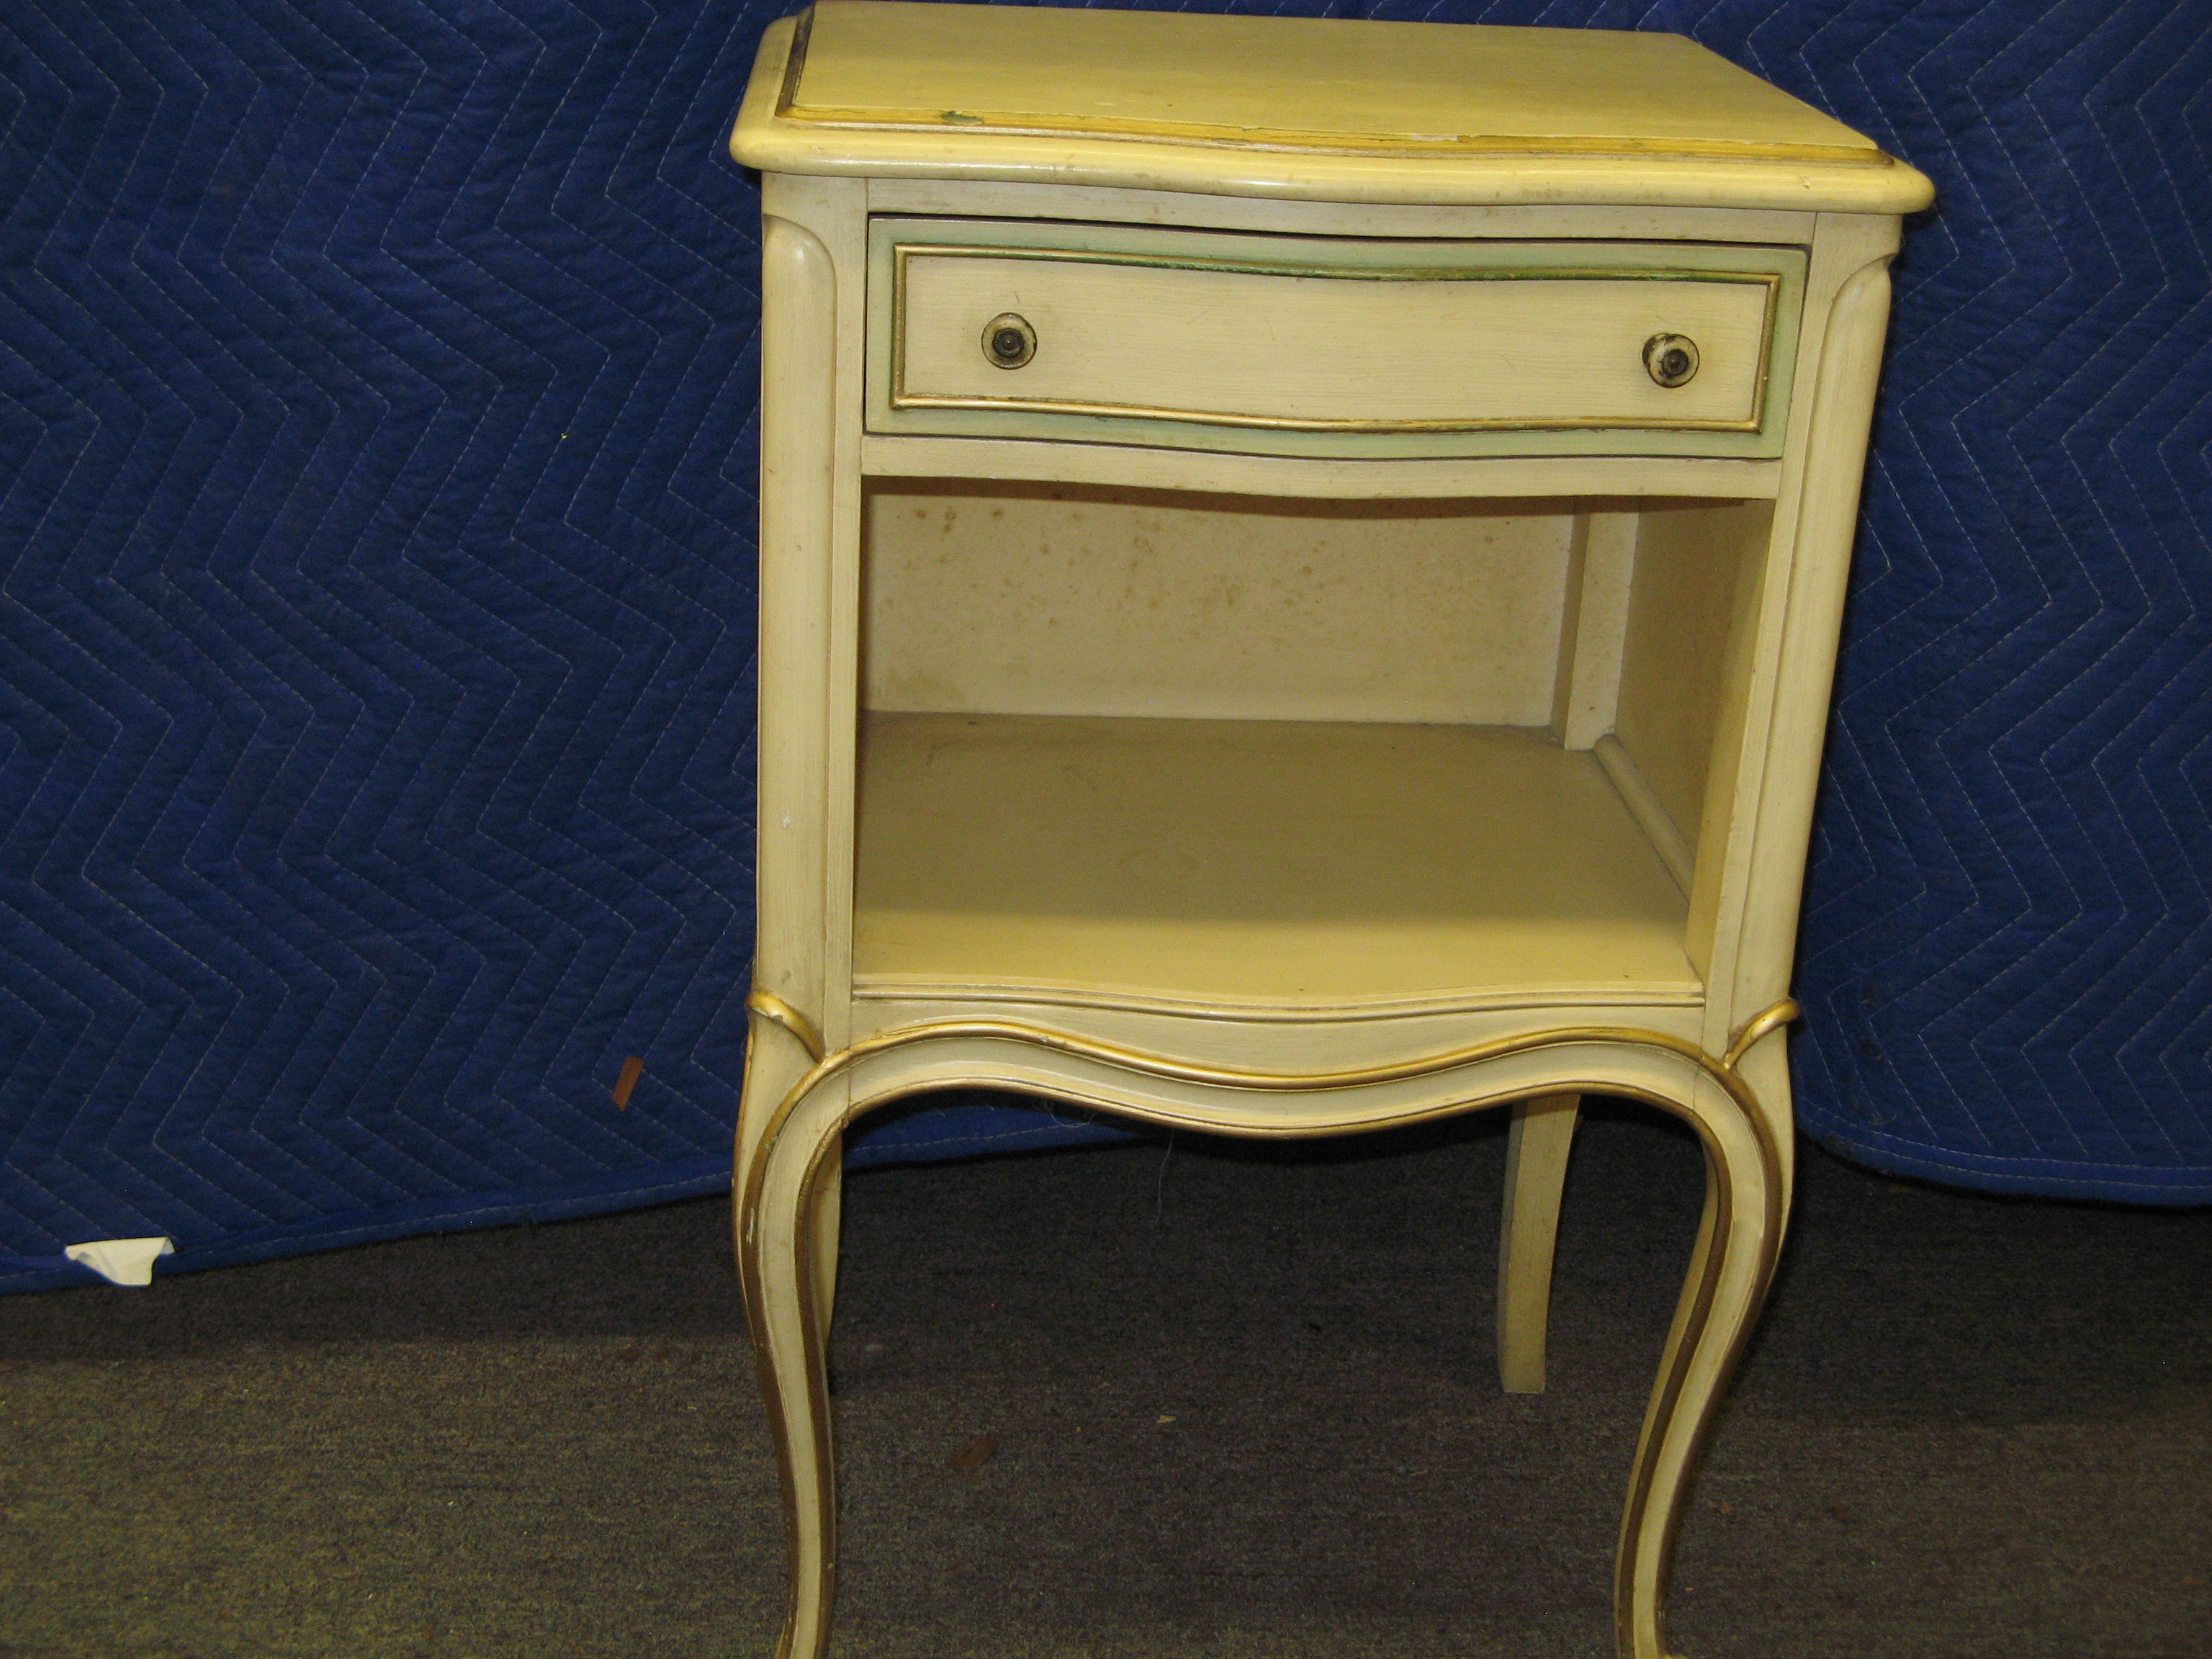 Drexel French Provincial Bedside Table with Curved Base & Legs, Cream